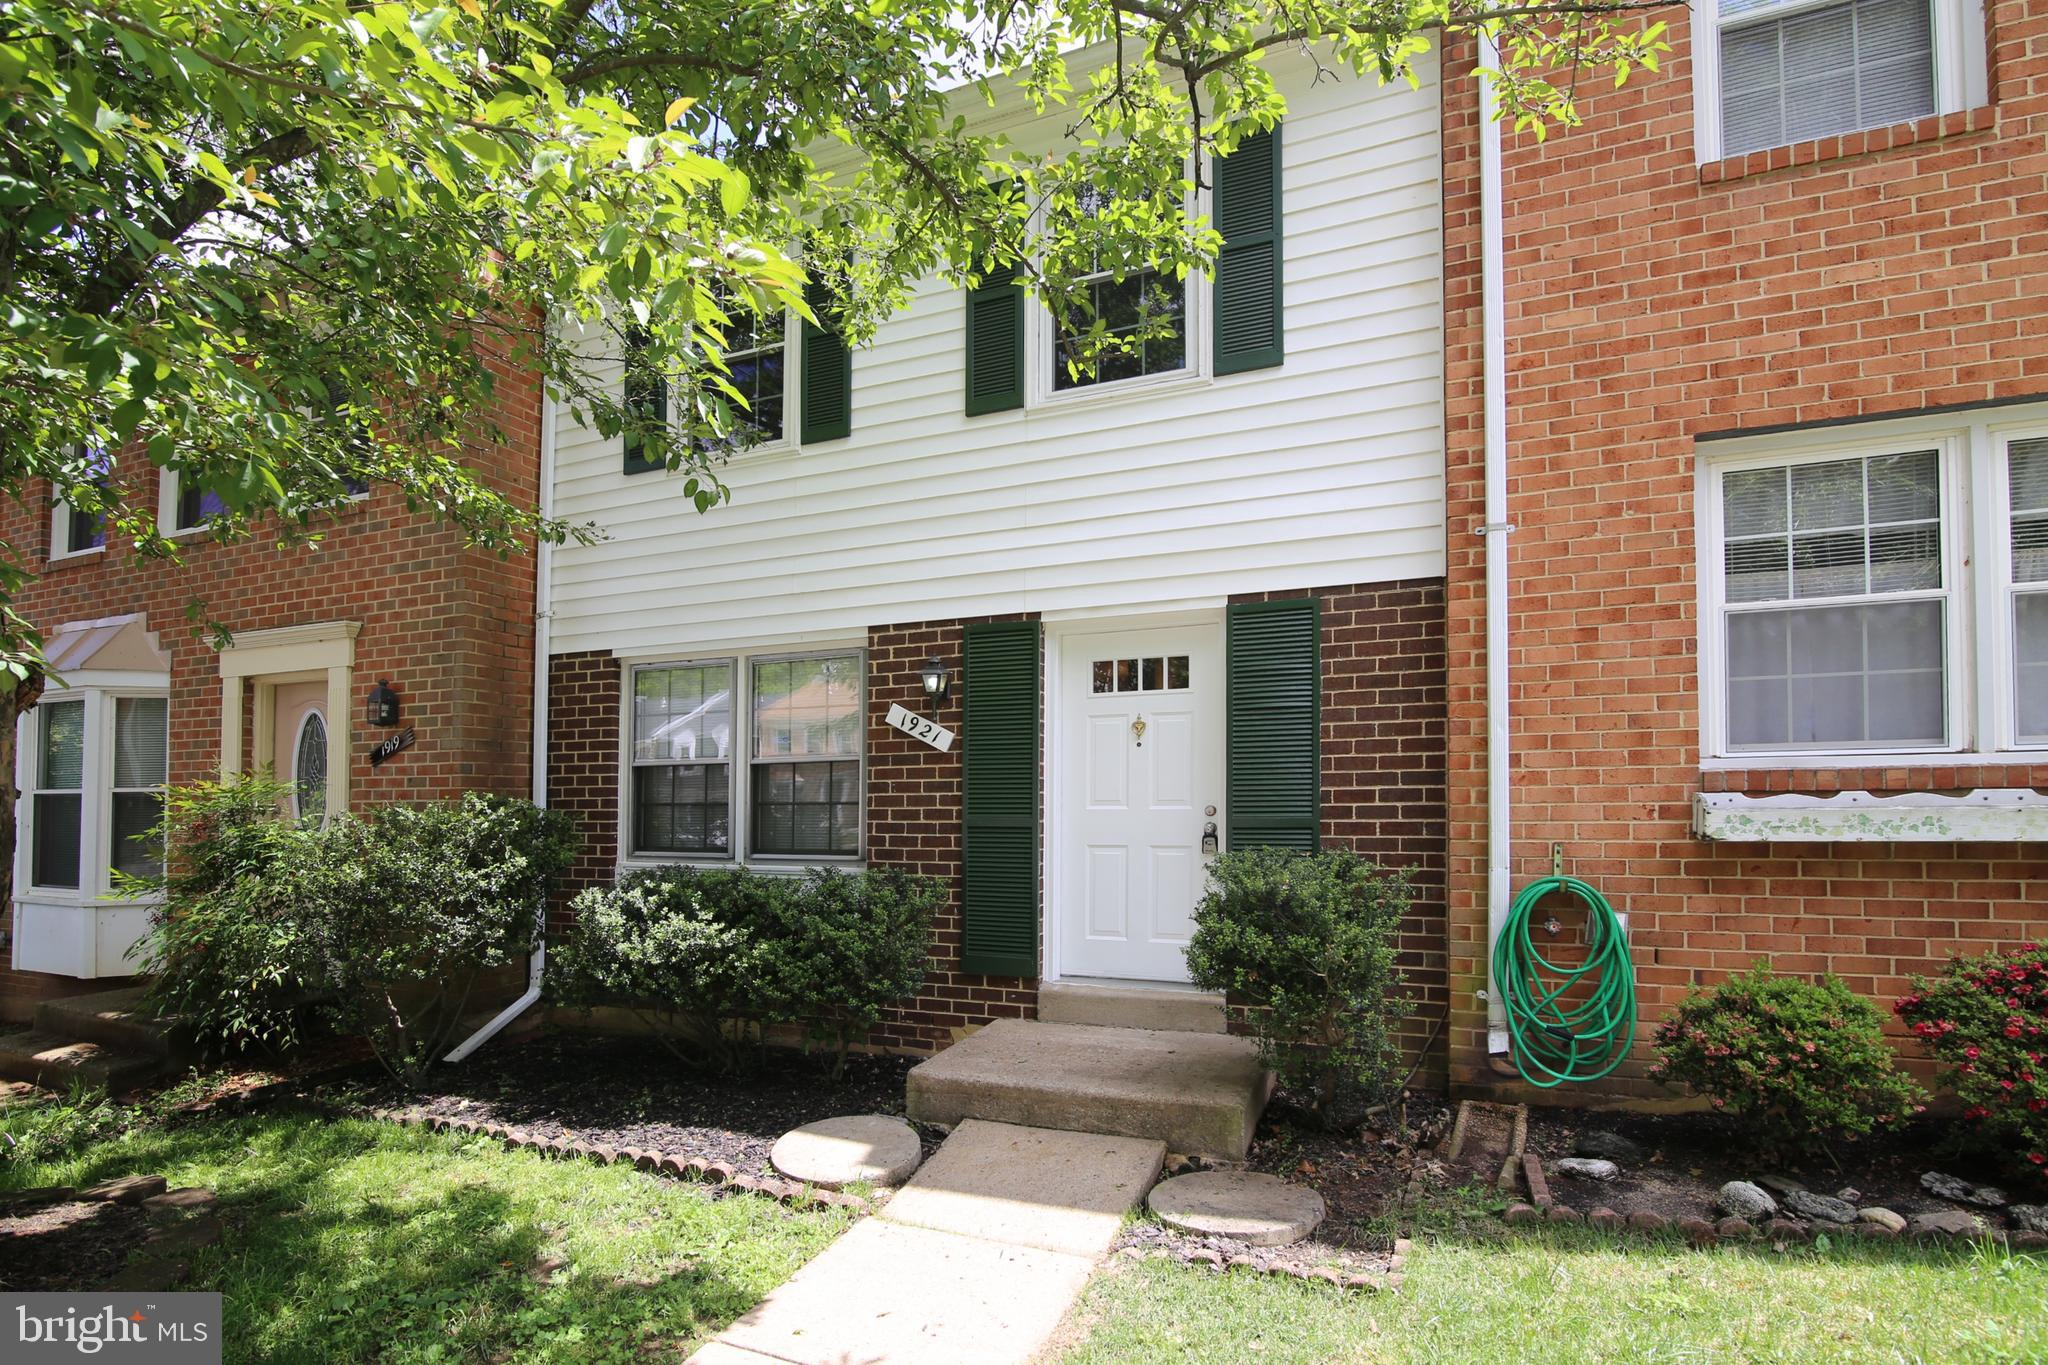 Immediate Occupancy!!This is a move in ready, well maintained  bright town house,  nestled on a tree lined street close to shopping, services and commuter routes.  The roomy eat in kitchen with good counter space and ceramic floors has  a  pantry and separate broom closet to compliment the nice cabinetry  for extra storage space. Pretty ceramic entry way is low maintenance. Contemporary light fixtures bring a modern flair to this house along with the vessel sink vanity in the powder room. The lower level sports  a big family room  with easy maintenance laminate floors.  There is also a large laundry room with lots of space for doing crafts or projects. Sliding glass doors lead to a private fenced rear yard with deep wooded views. Cardinal Title preferred.